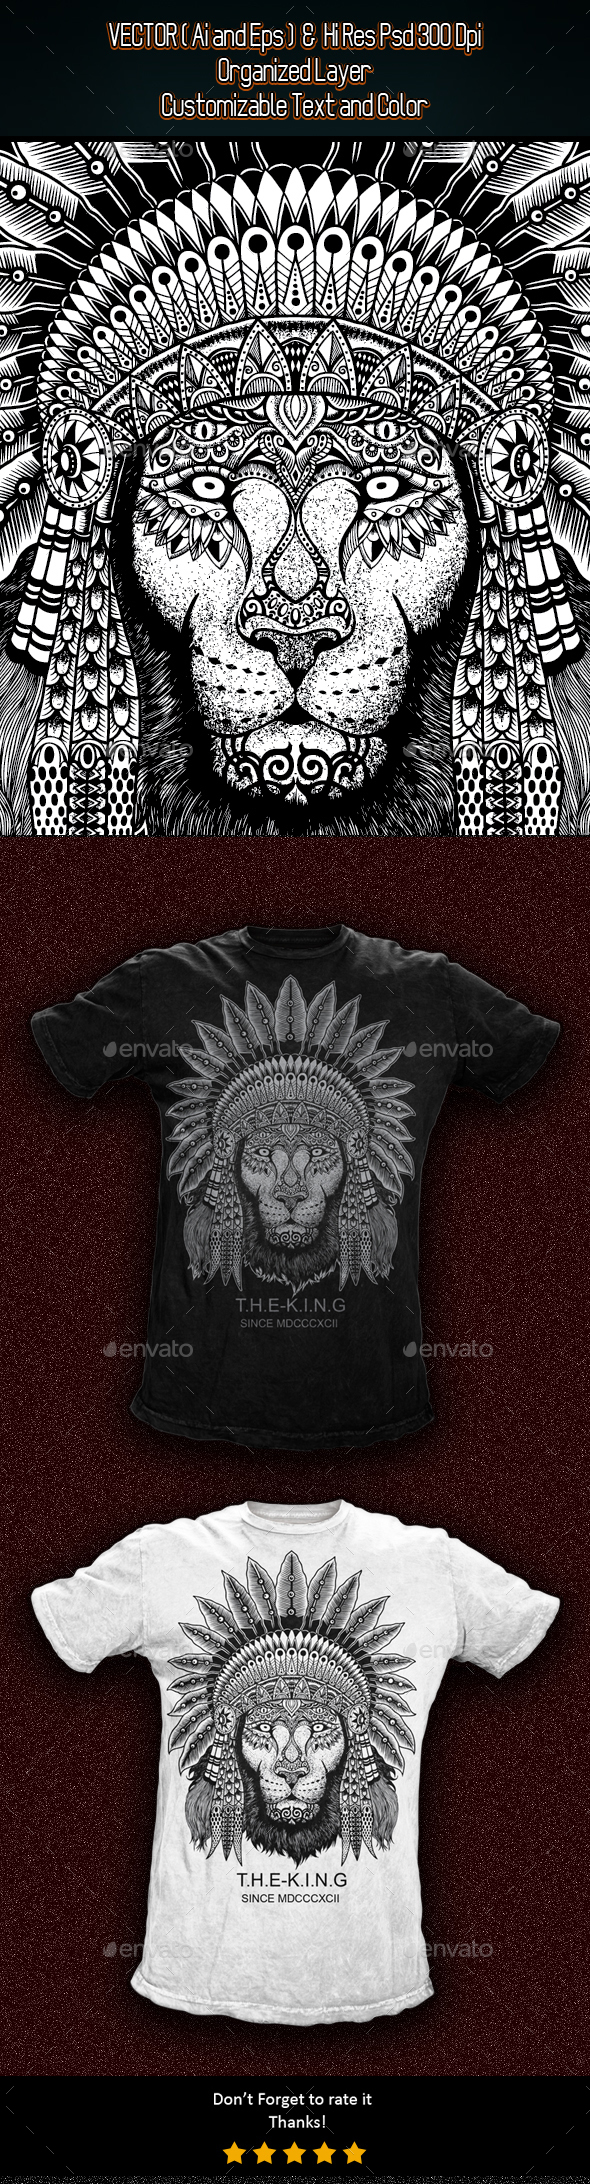 The King - Grunge Designs